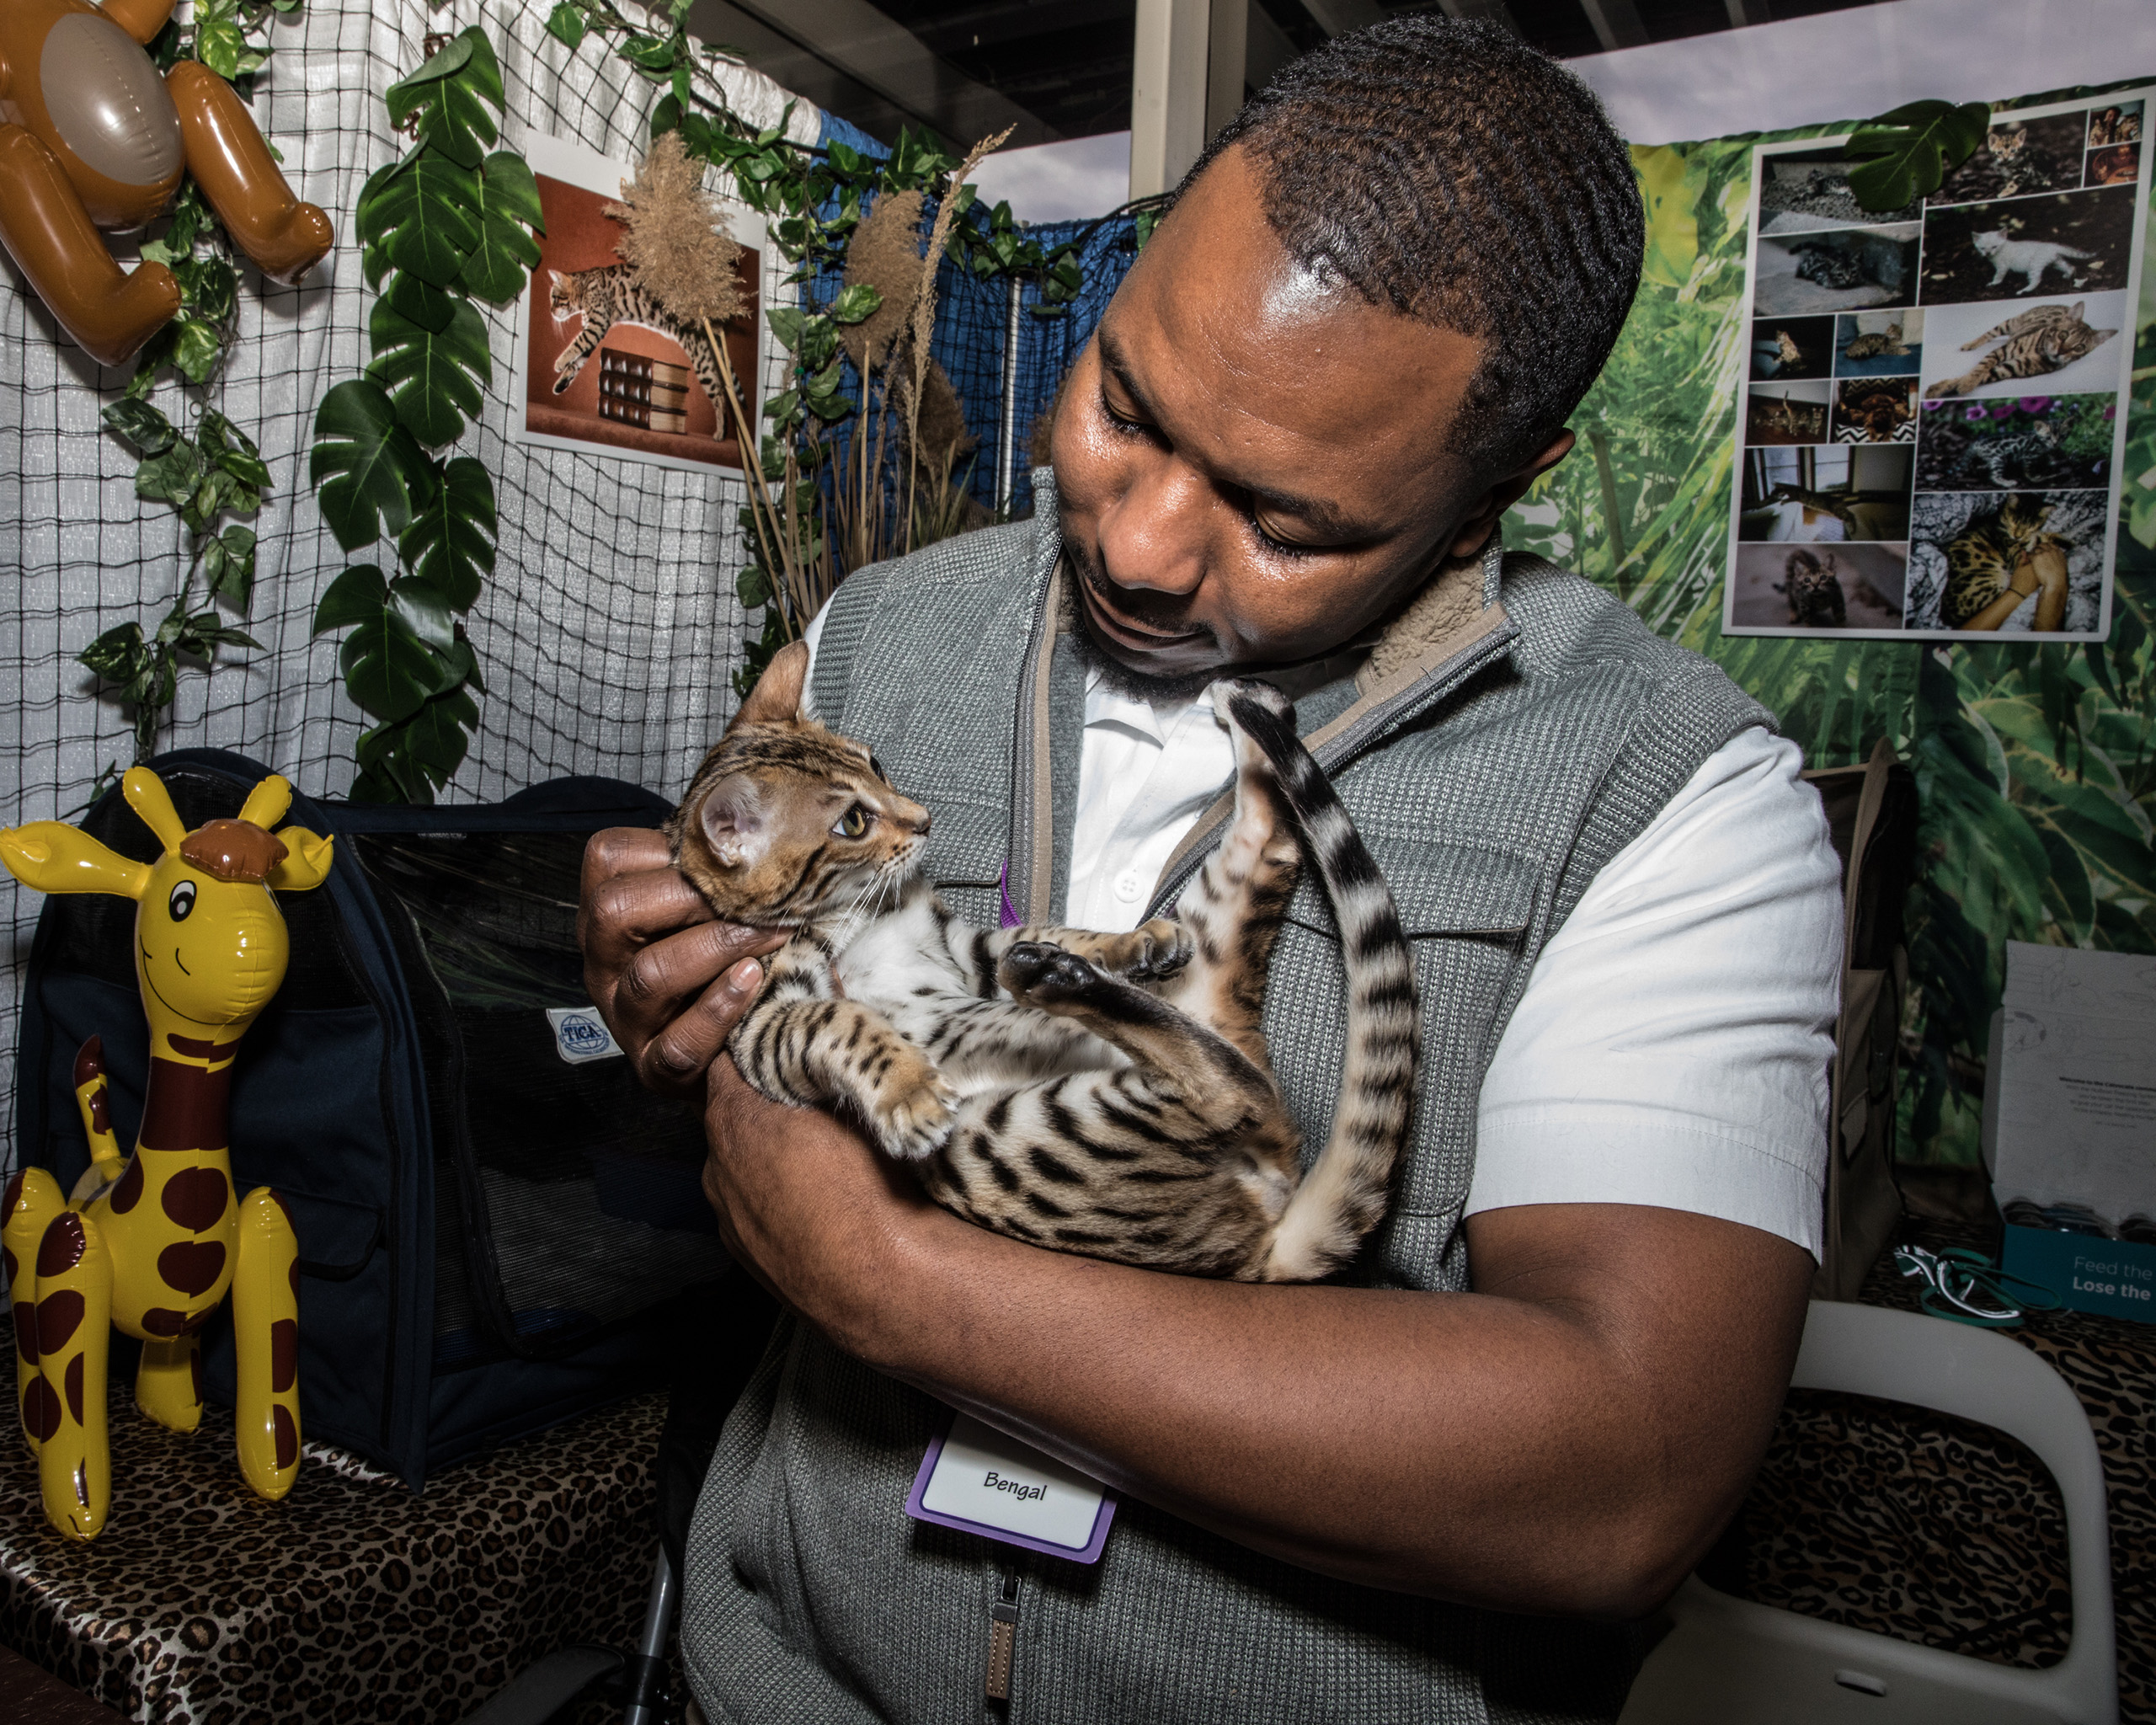 A Bengal kitten held by owner Anthony Hutcherson from Maryland, at the American Kennel Club's Meet the Breeds event on Feb. 11, 2017.